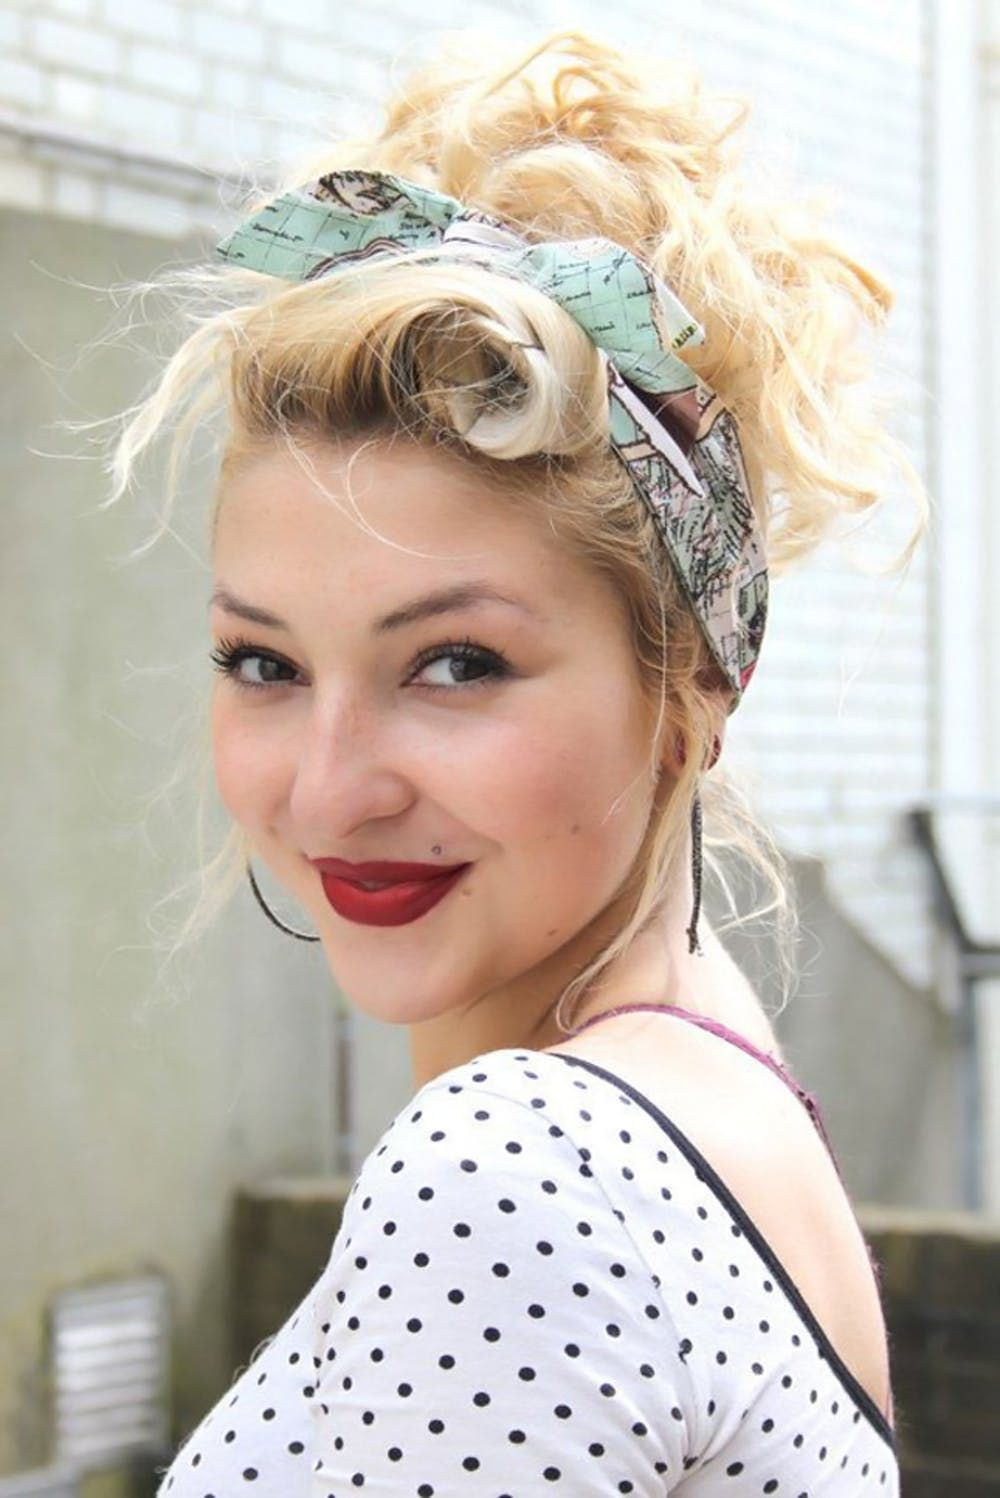 10 Lazygirl Hairstyles For Chic Vacation Hair Scarf Hairstyles Chic Hairstyles Retro Hairstyles